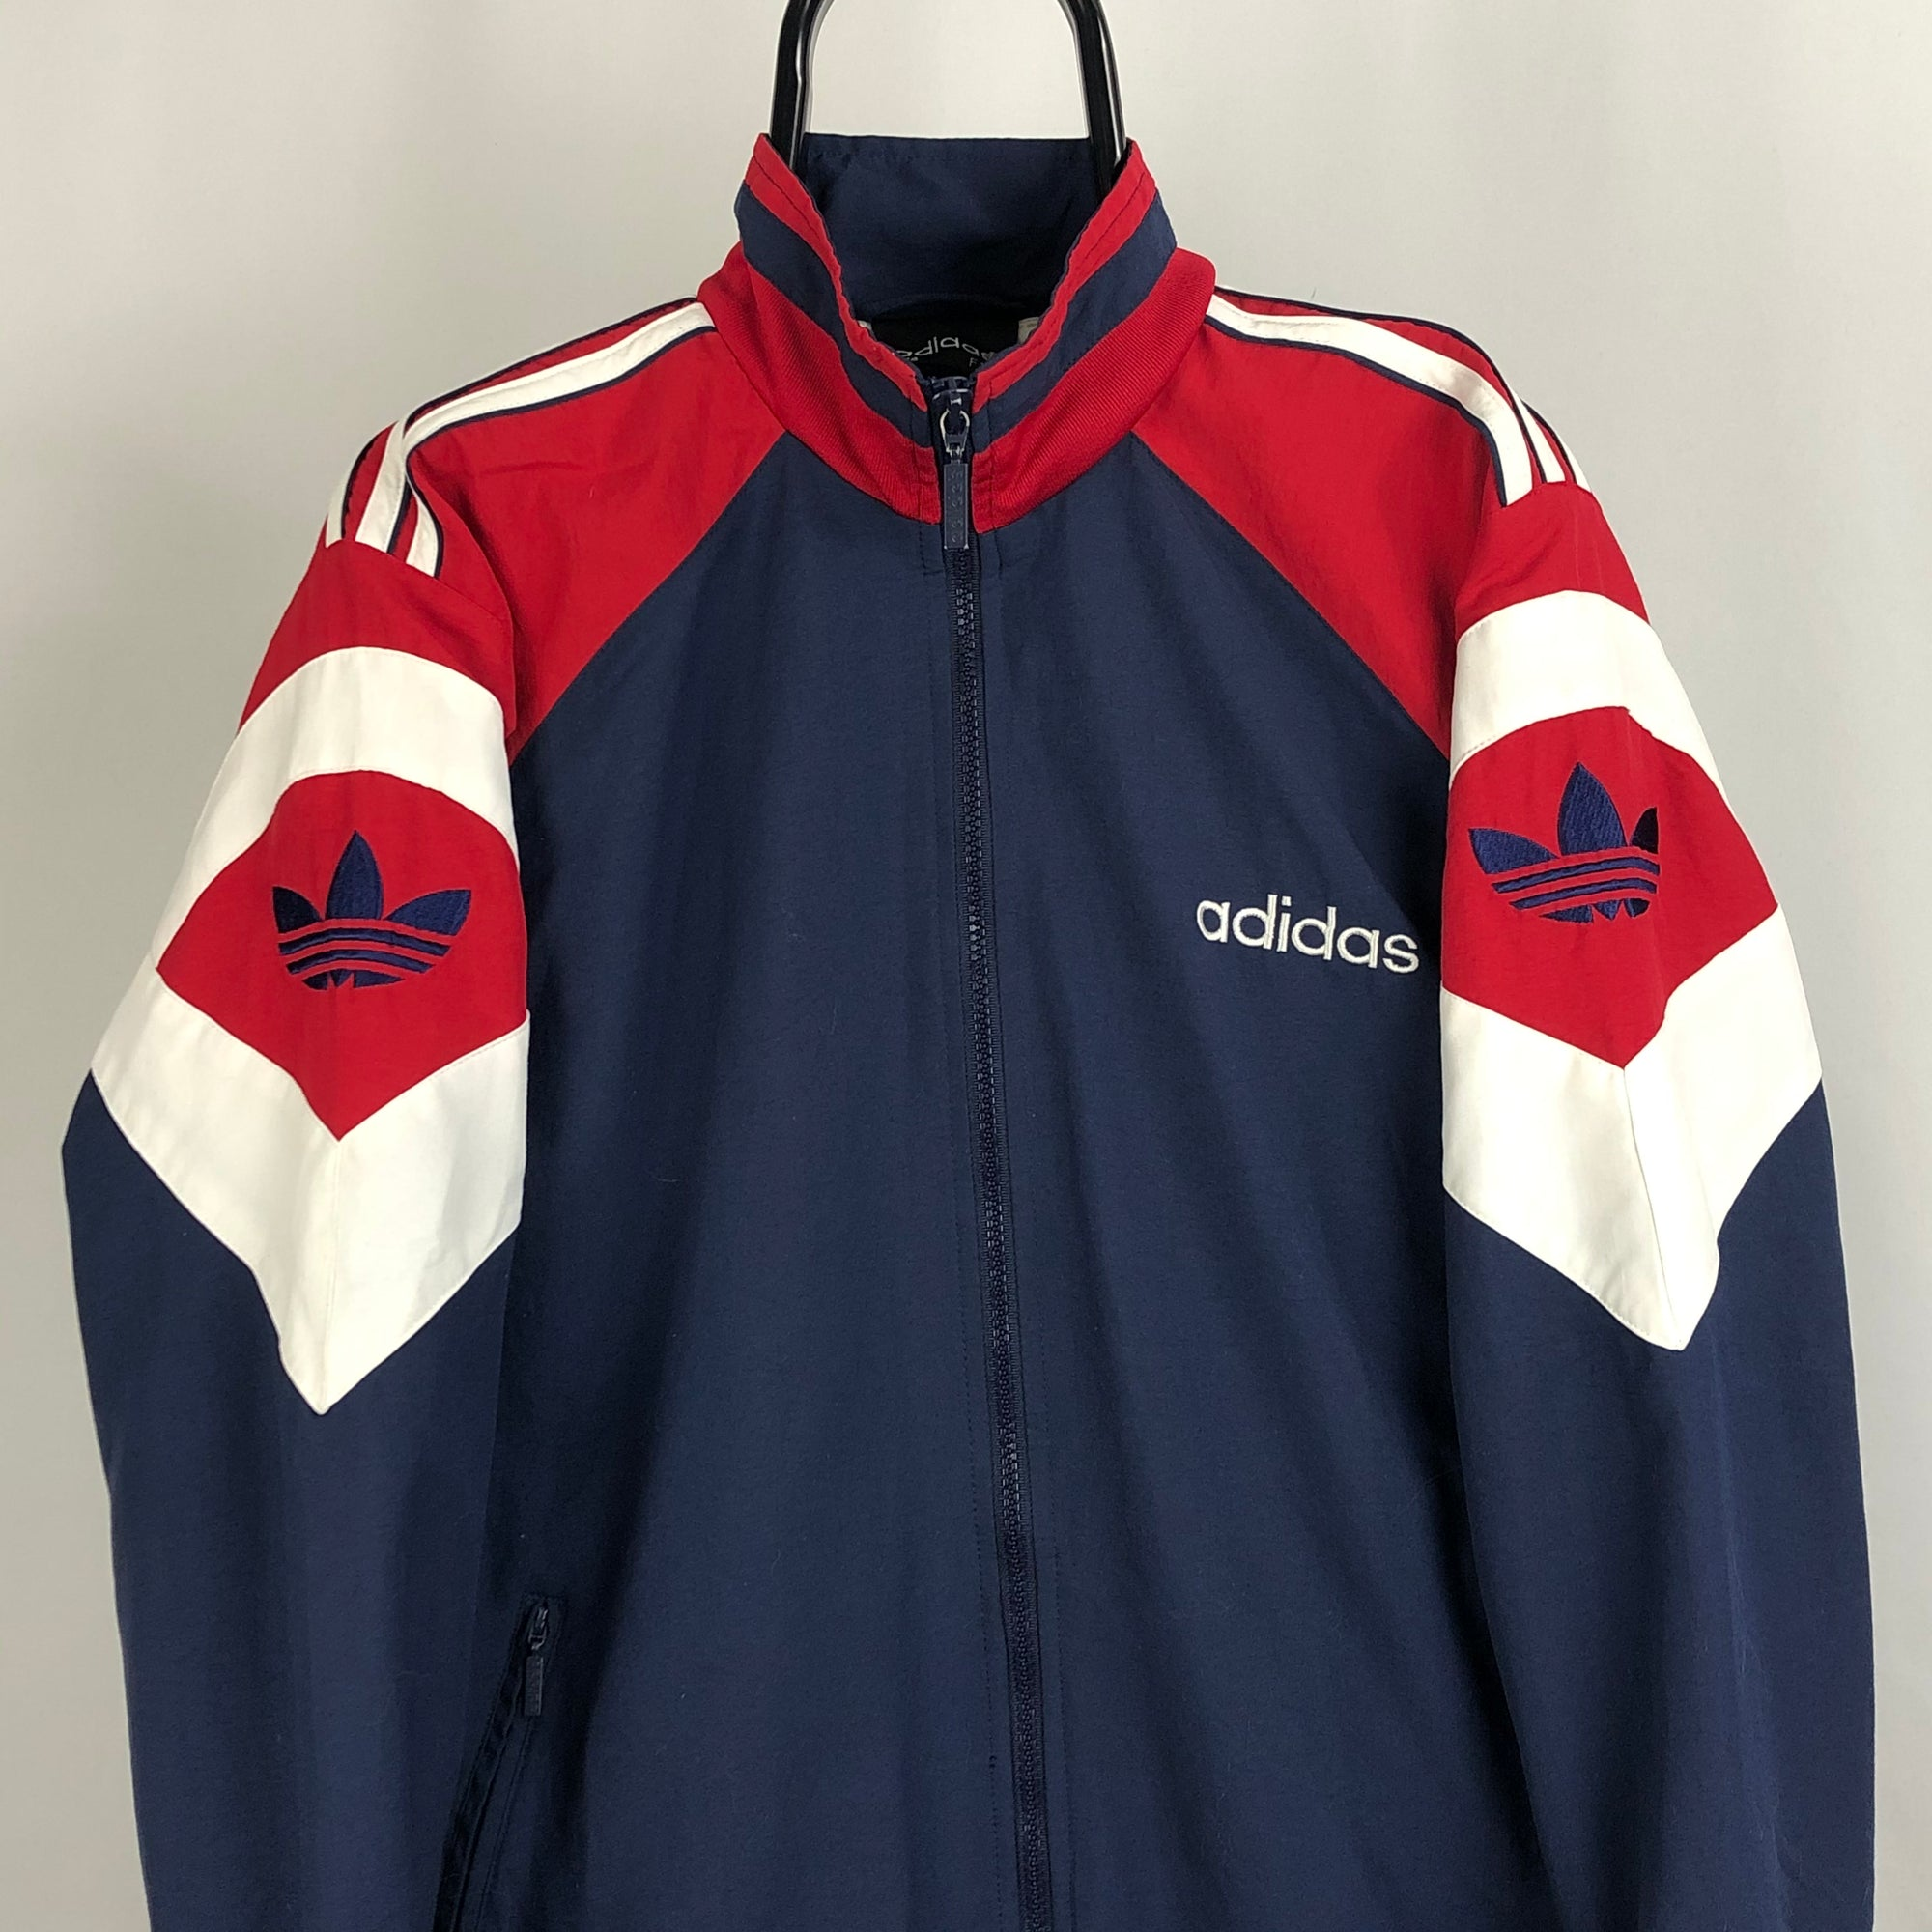 Vintage Adidas Embroidered Spellout Track Jacket - Men's Medium/Women's Large